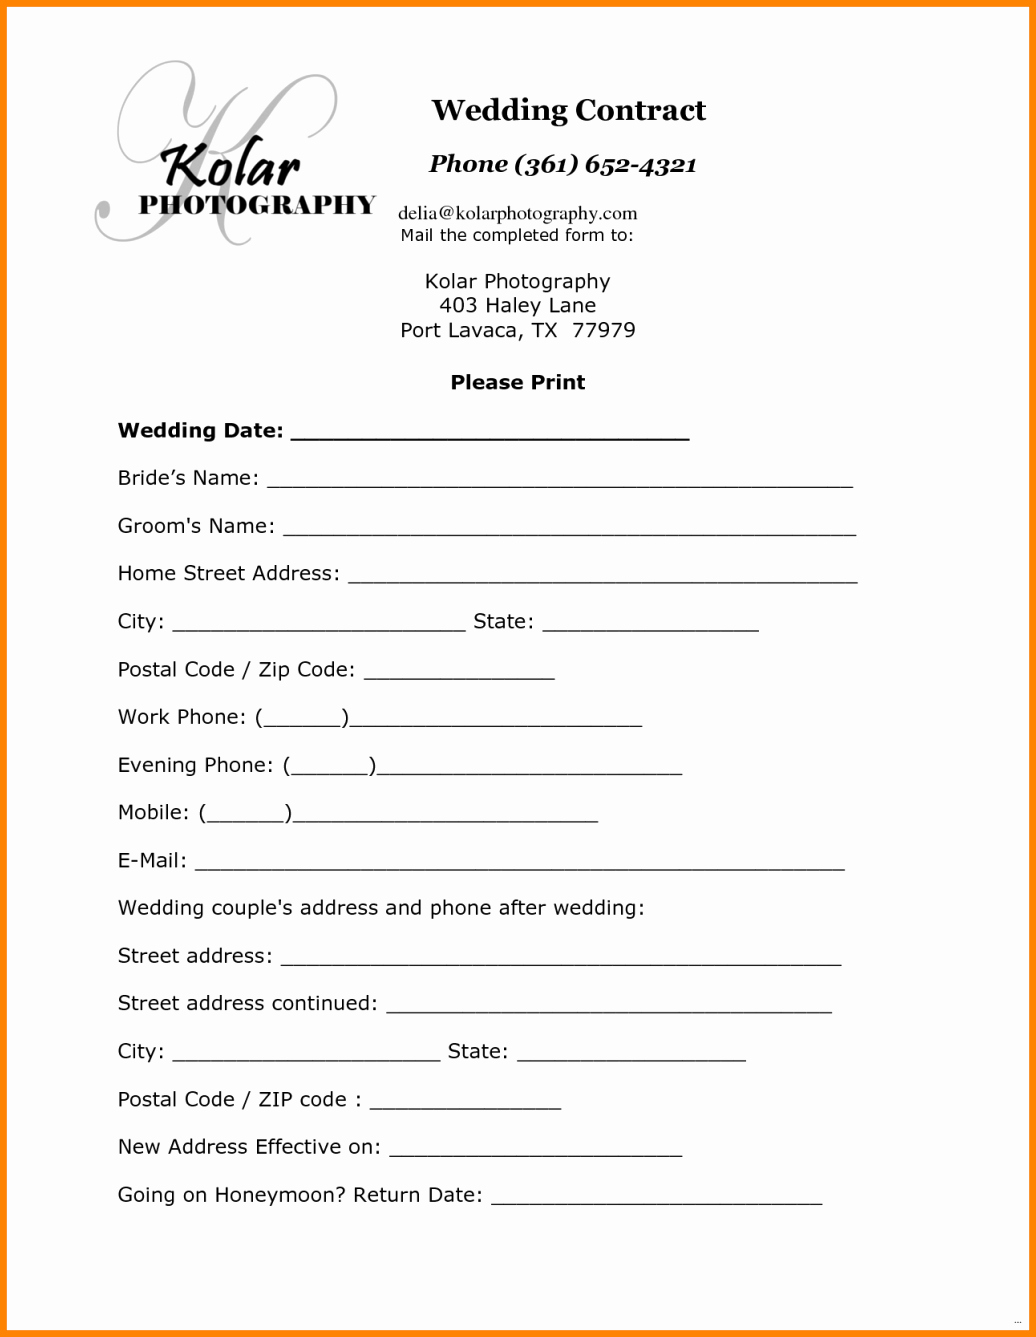 Simple Wedding Photography Contract Template Lovely 12 Simple Photography Contract